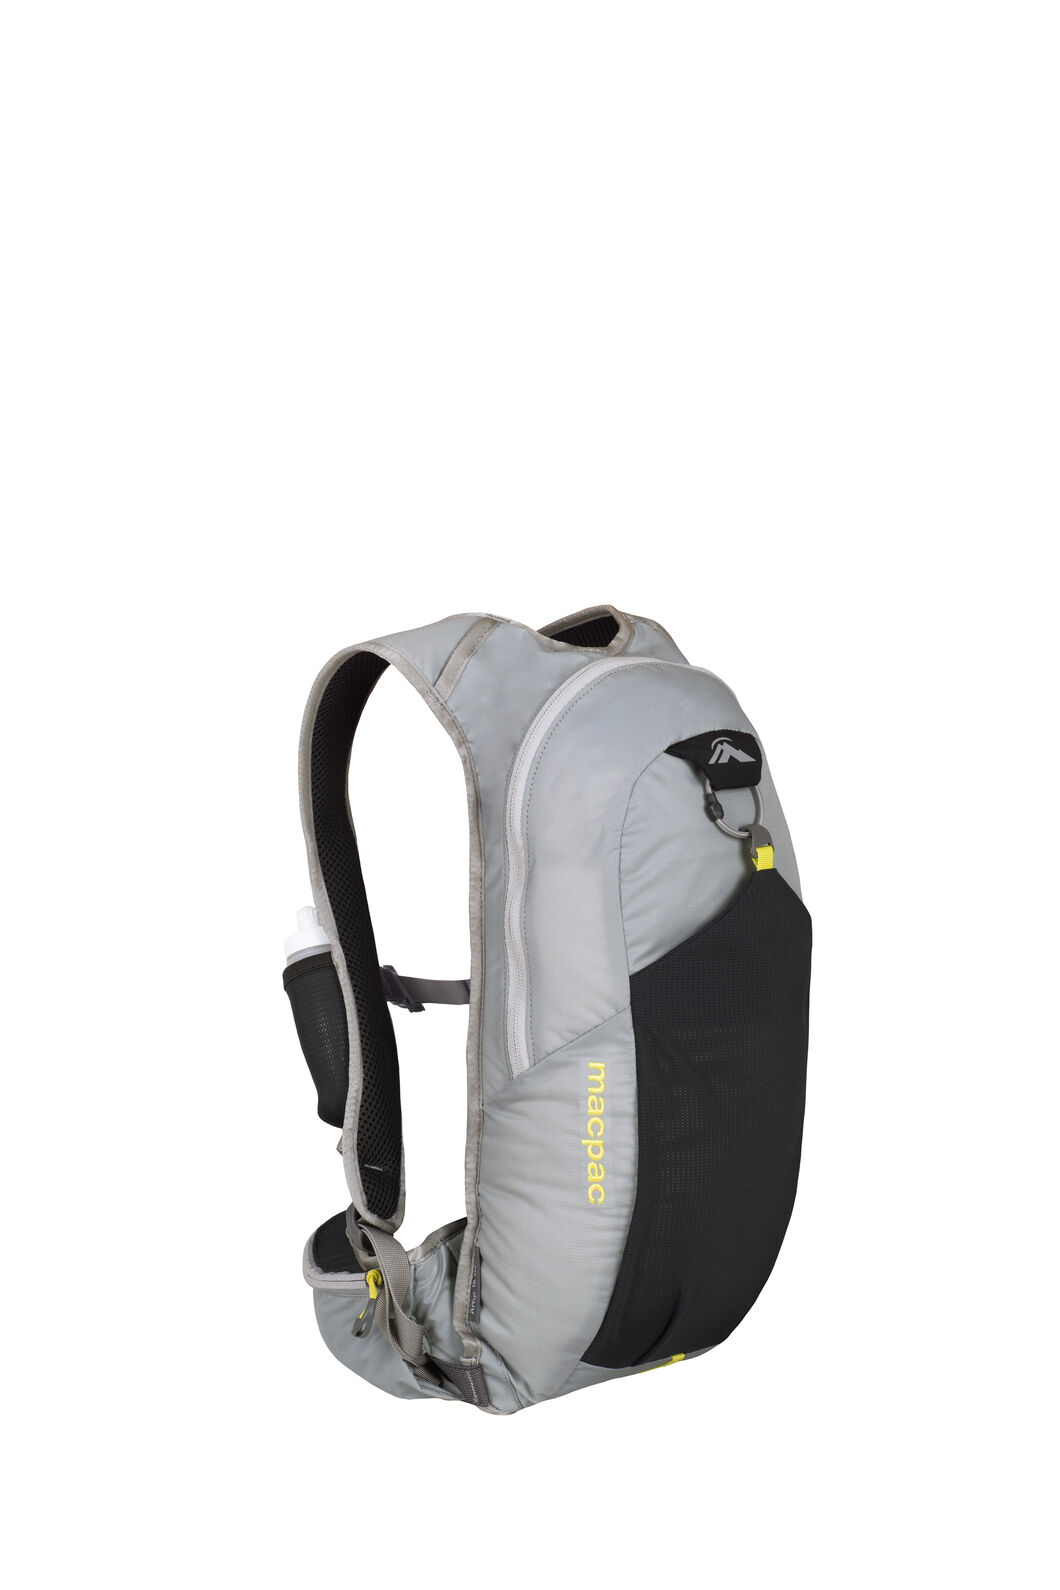 Macpac Amp 12Hr 7L Running Pack, Highway, hi-res